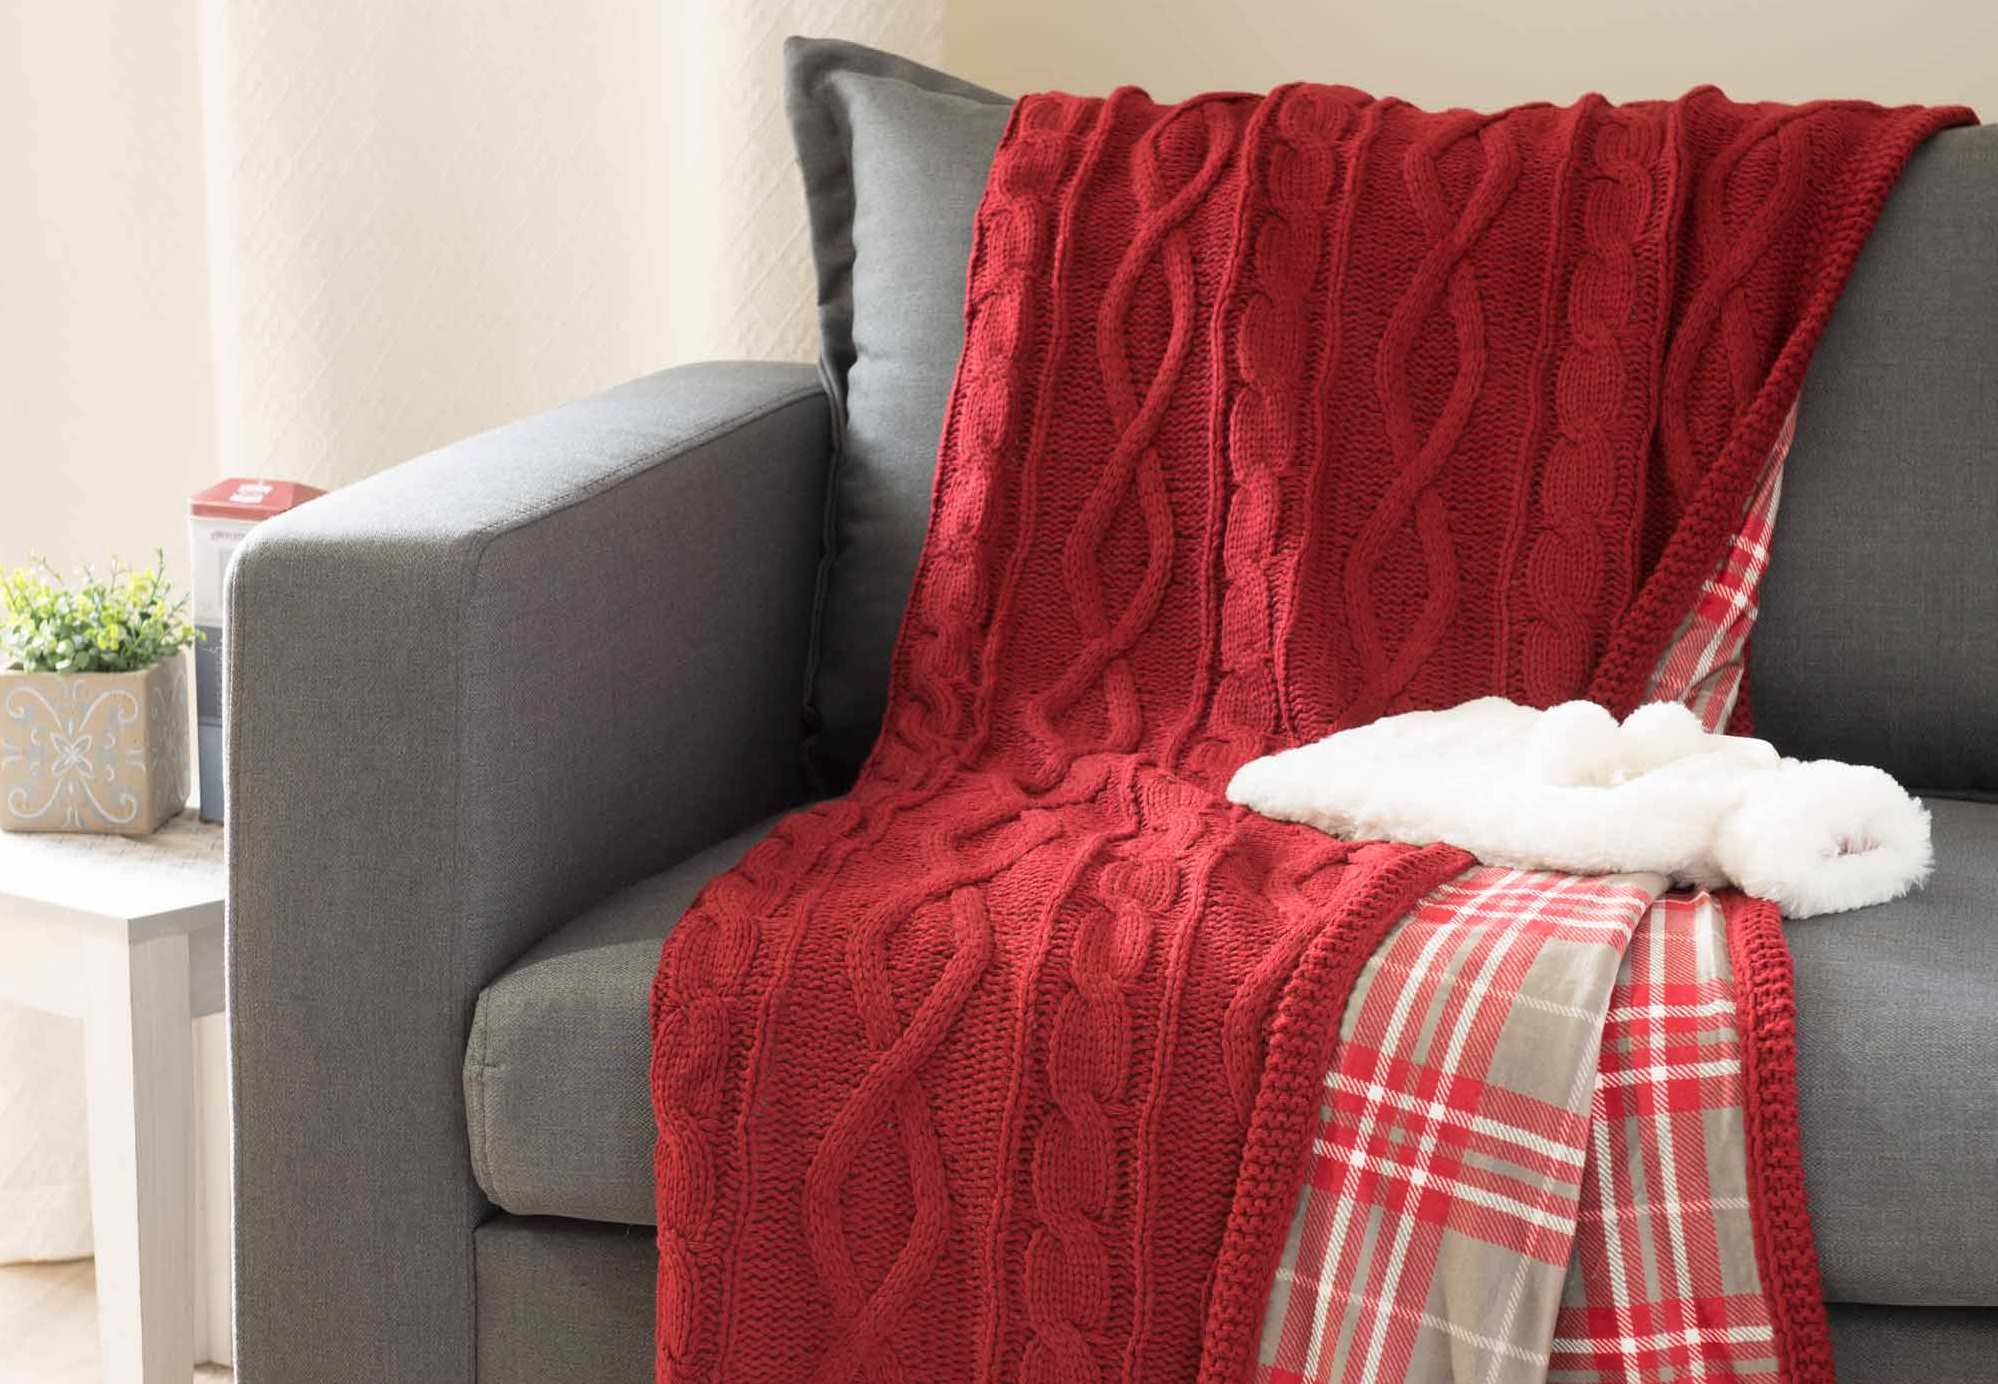 Red mohair plaid throw on a couch